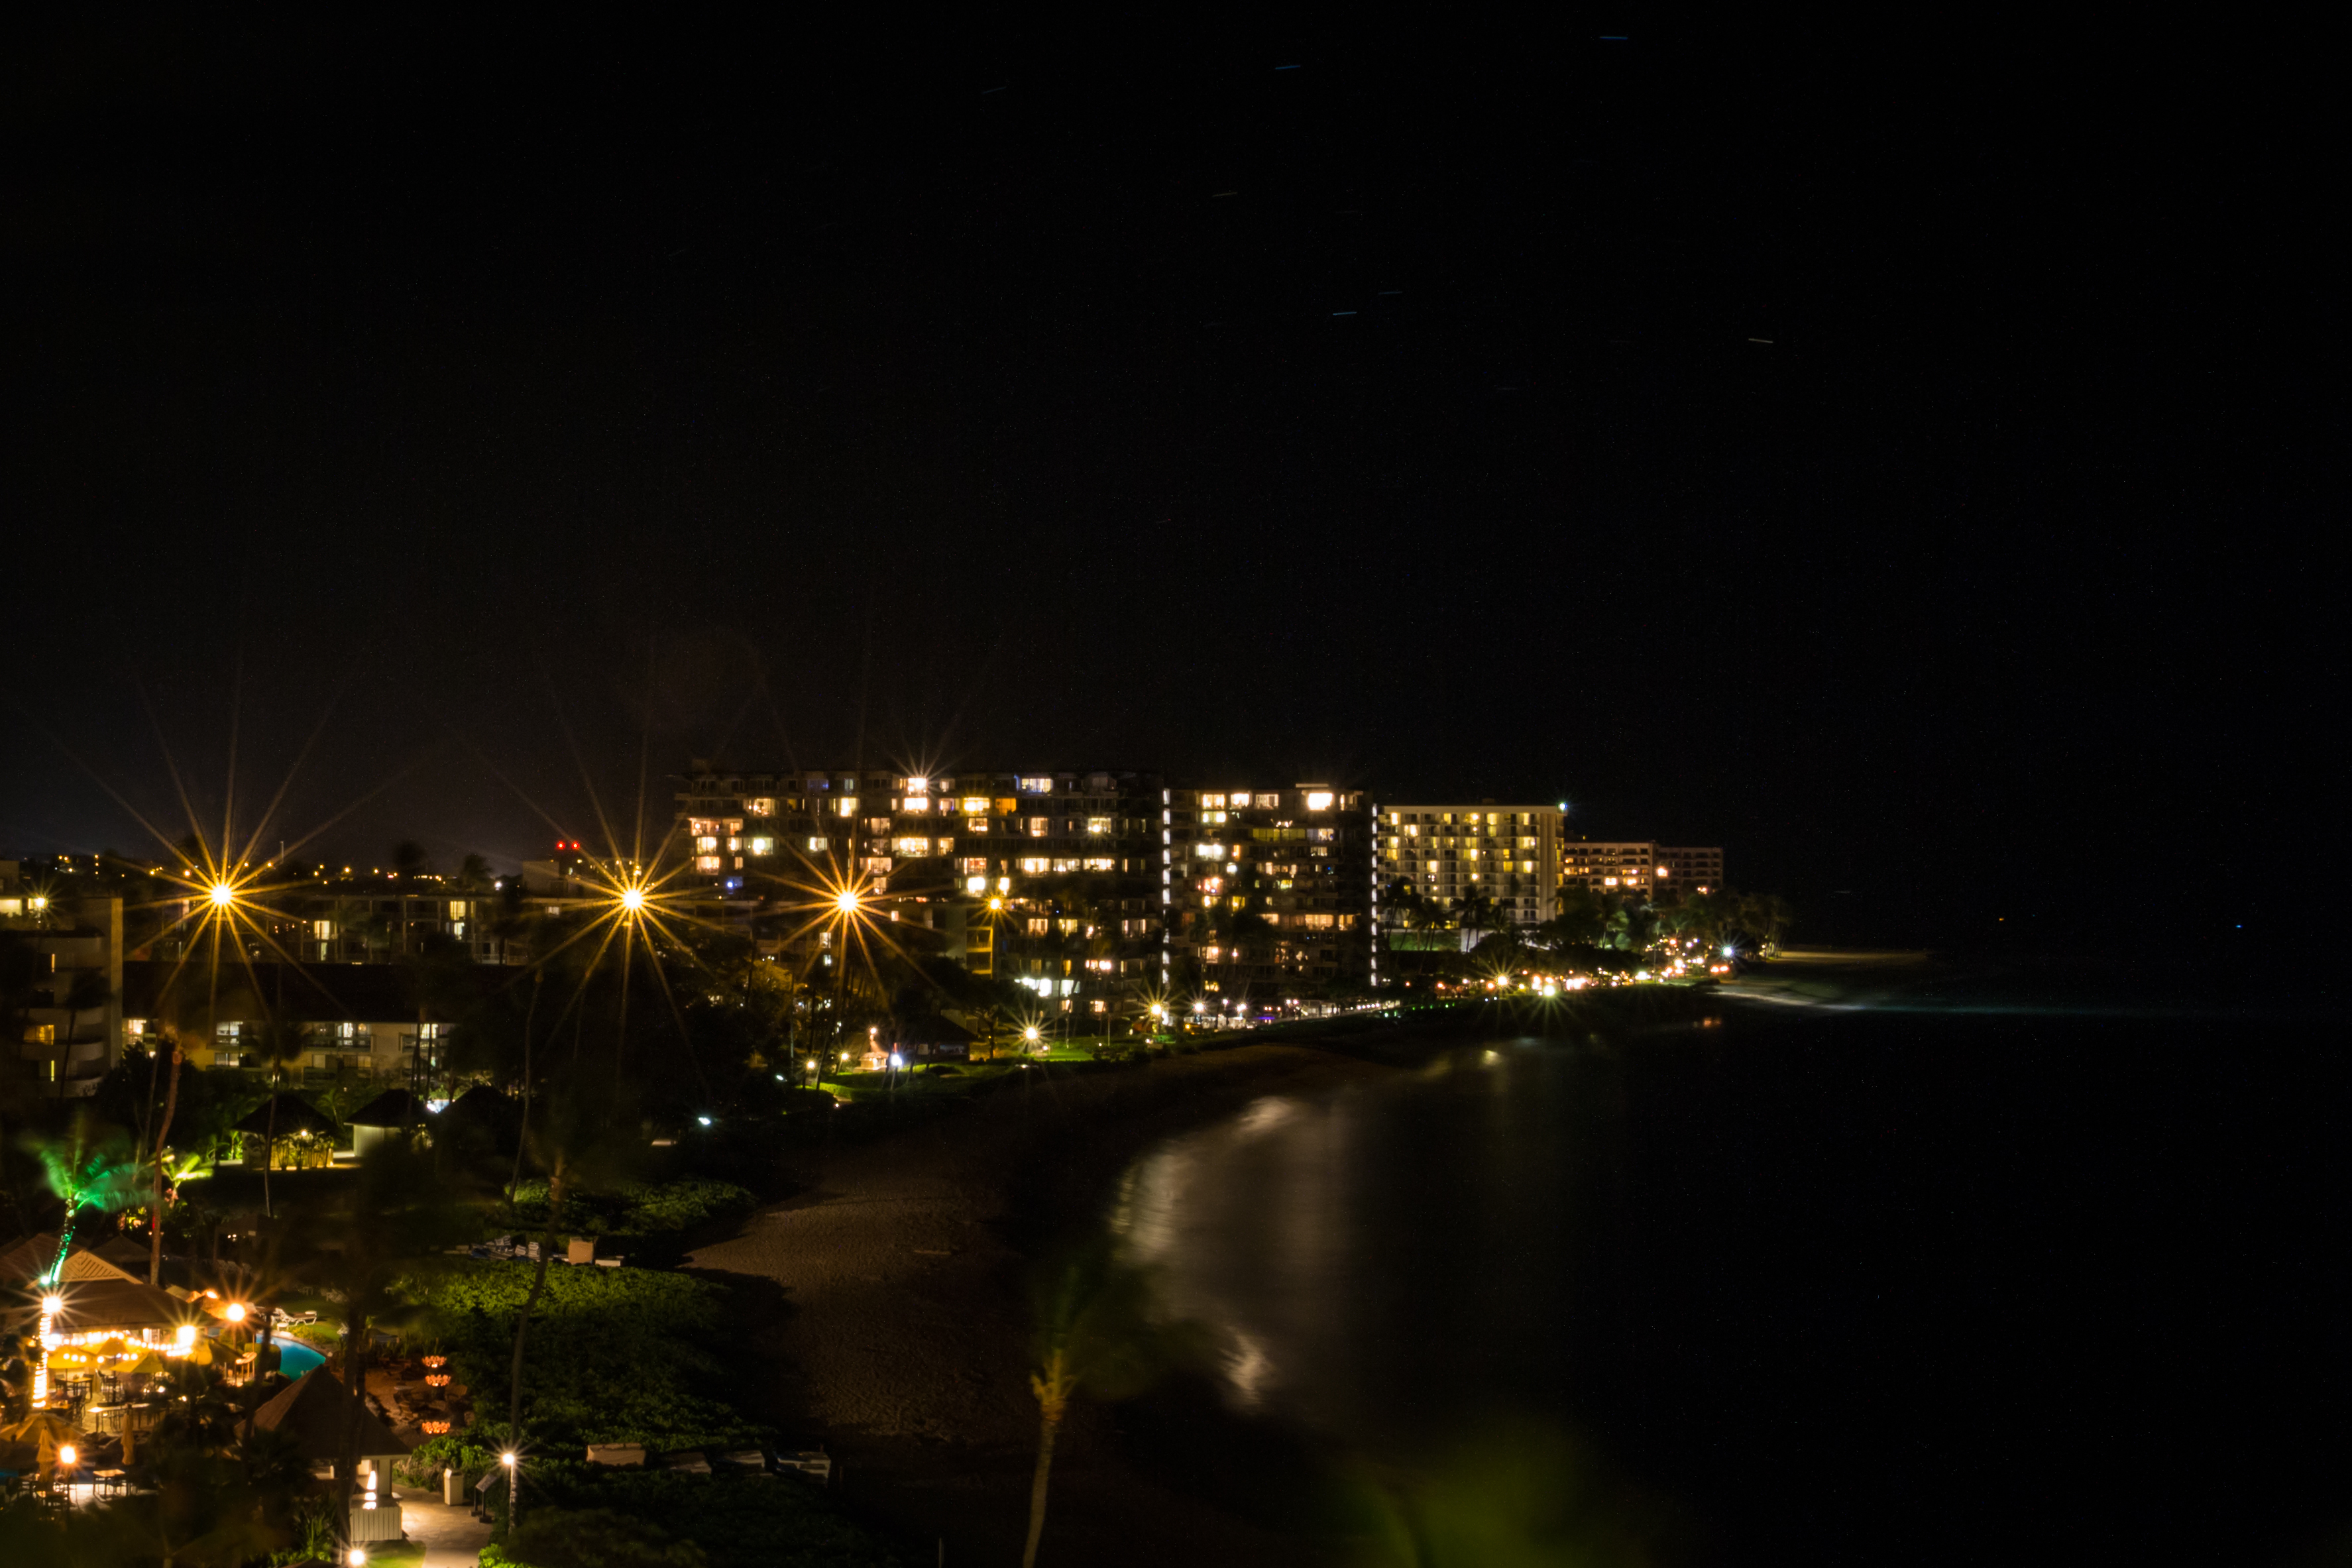 HD Wallpaper Night falls over Kaanapali Beach in Maui Hawaii 3549x2366